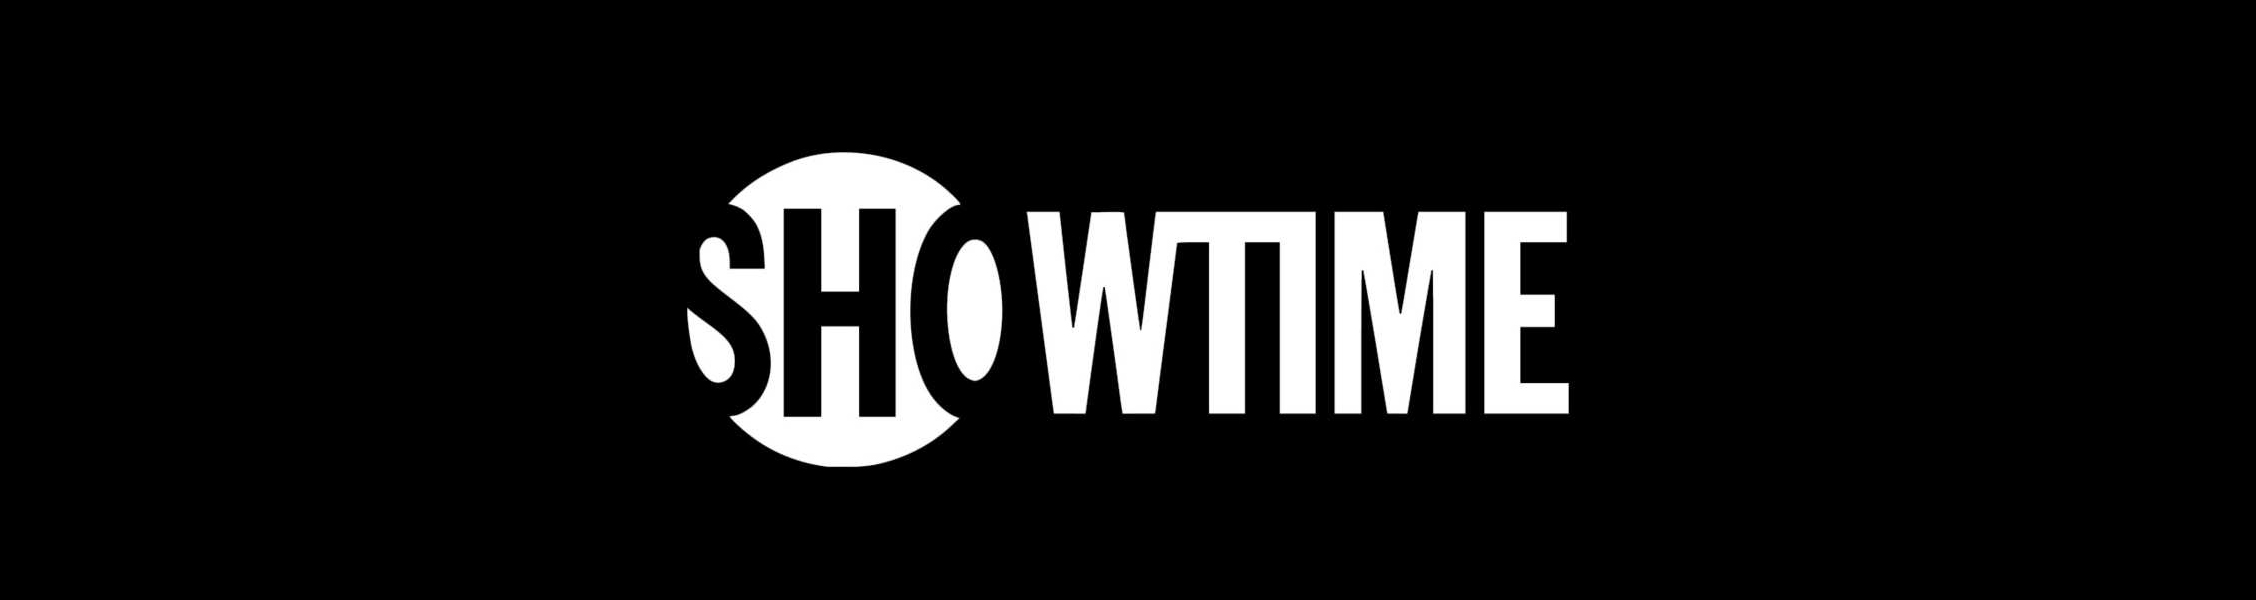 showtime-banner